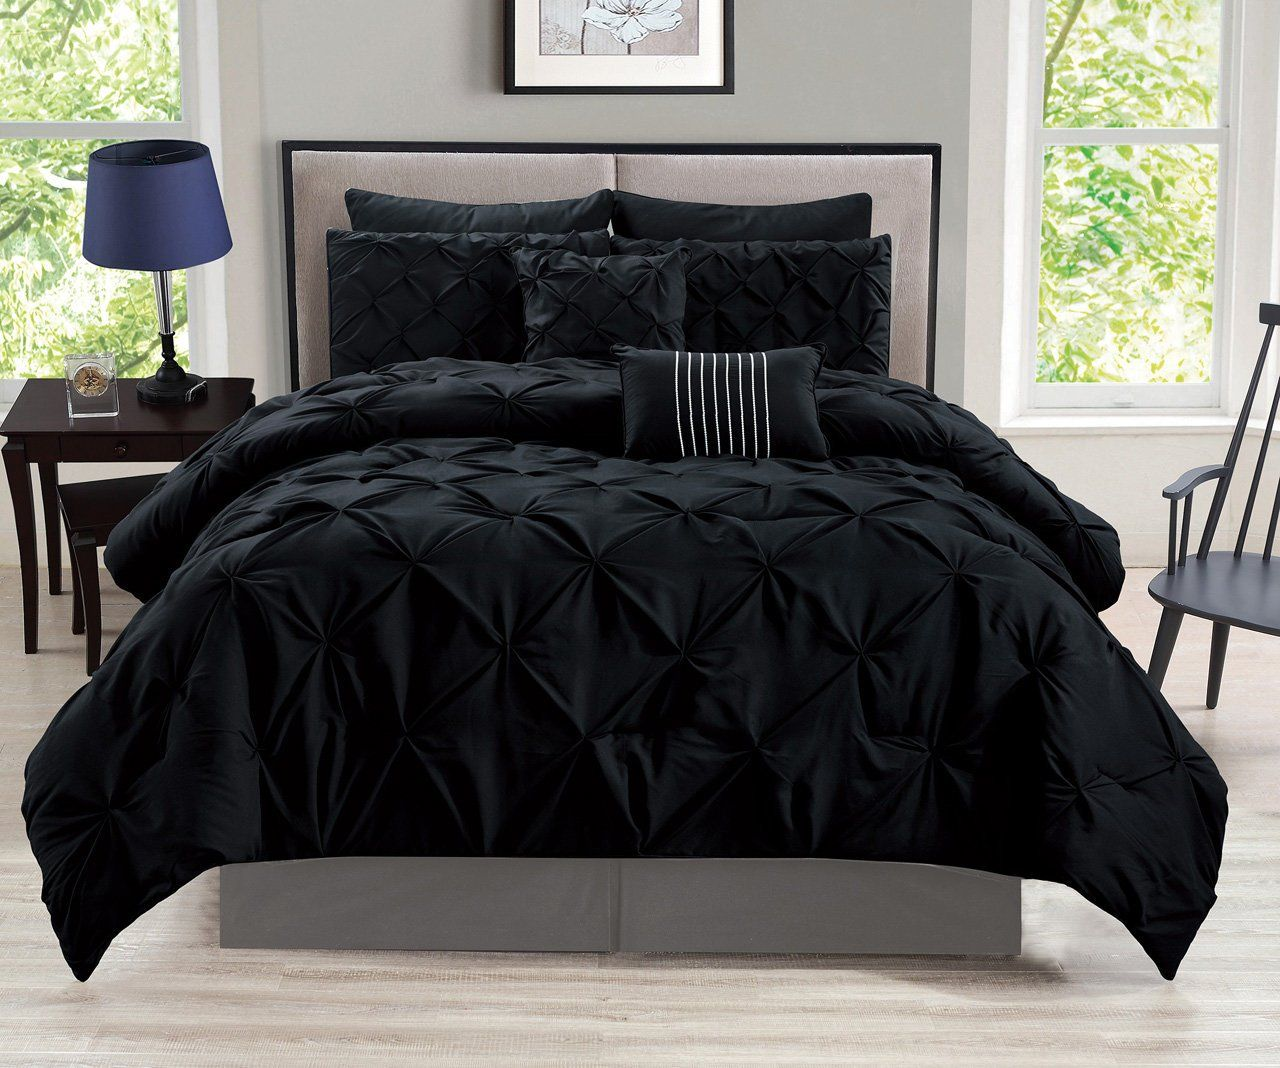 Best 12 Piece Rochelle Pinched Pleat Black Bed In A Bag Set 400 x 300